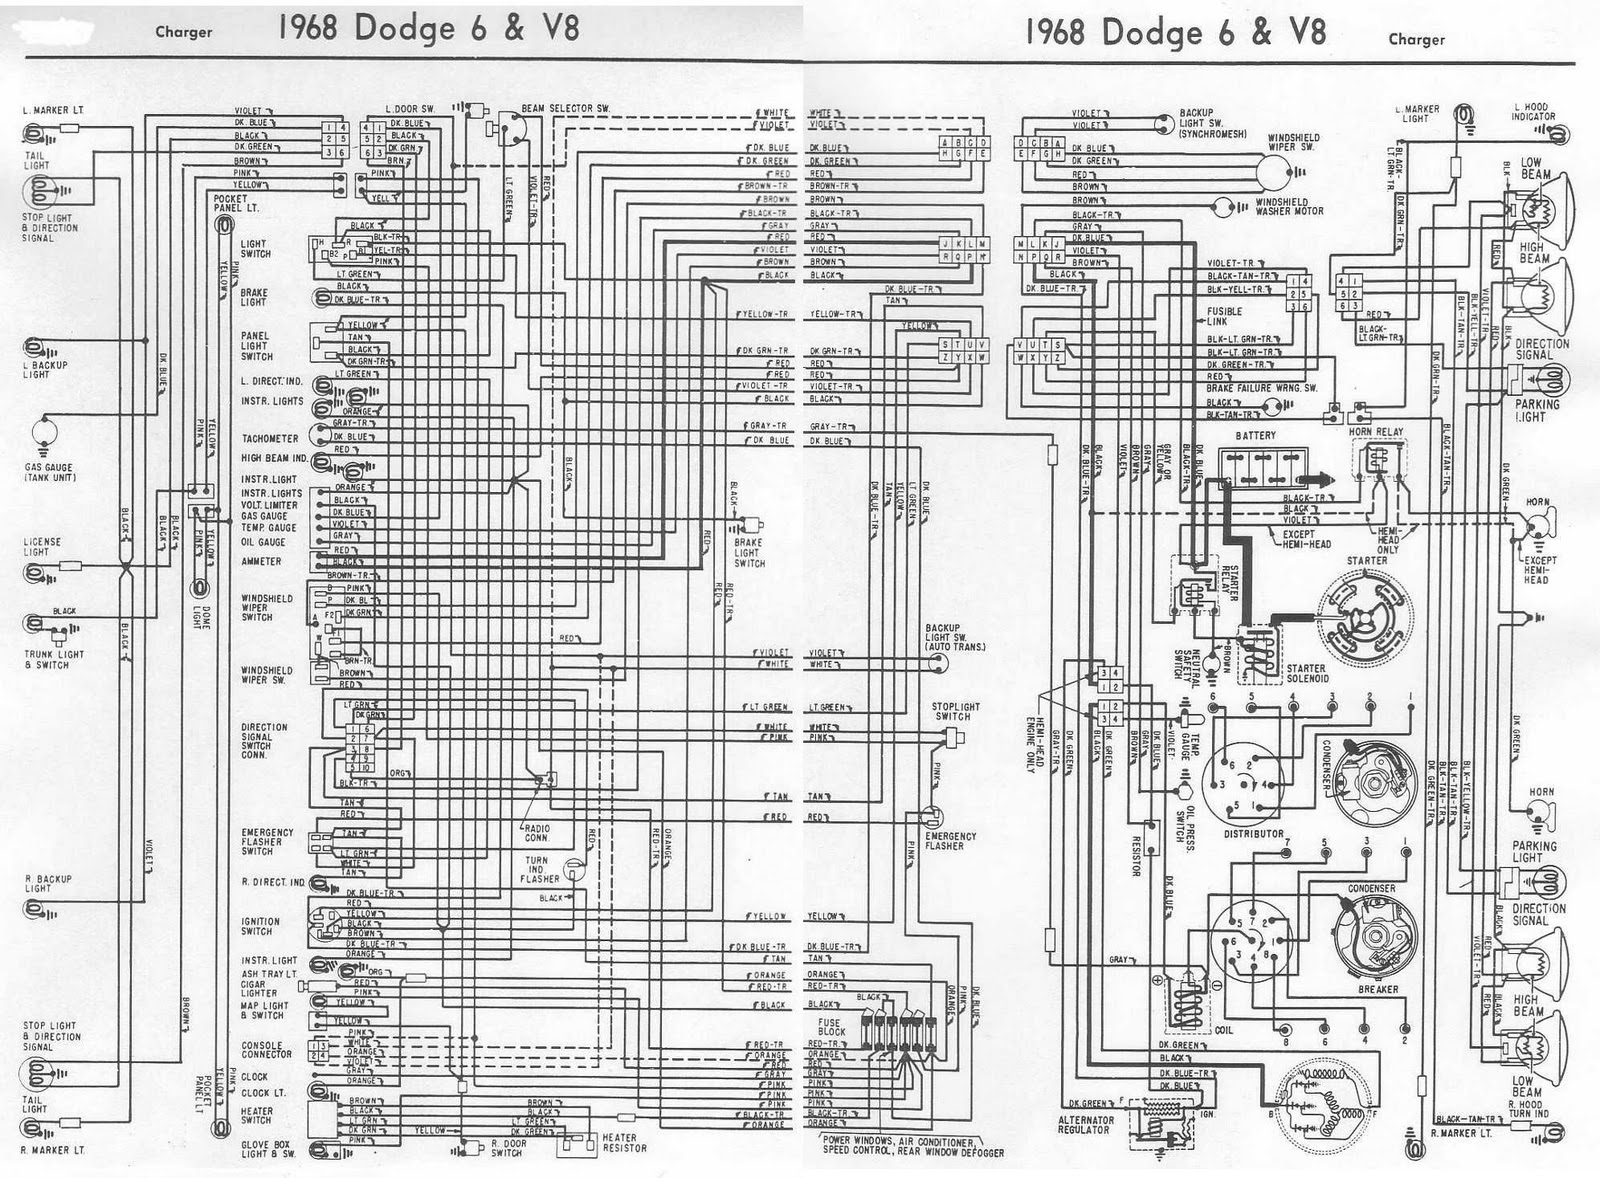 68 Mustang Dash Wiring Diagram | Wiring Liry on 1968 amc javelin wiring diagram, 68 chevelle ignition diagram, 1968 chevy impala wiring diagram, 1969 chevy camaro wiring diagram, 1968 pontiac catalina wiring diagram, 1968 jaguar xke wiring diagram, 1968 jeep cj5 wiring diagram, 1968 chevy c10 wiring, 1955 chevy bel air wiring diagram, 68 impala wiring diagram, 1968 chevy pickup wiring diagram, 1963 chevy nova wiring diagram, 1968 dodge dart wiring diagram, 1968 mustang tach wiring diagram, 1968 ford falcon wiring diagram, 1968 cadillac deville wiring diagram, 1968 chevy van wiring diagram, 1985 el camino ignition wiring diagram, 1968 oldsmobile cutlass wiring diagram, 1968 chevy c10 fuse block,